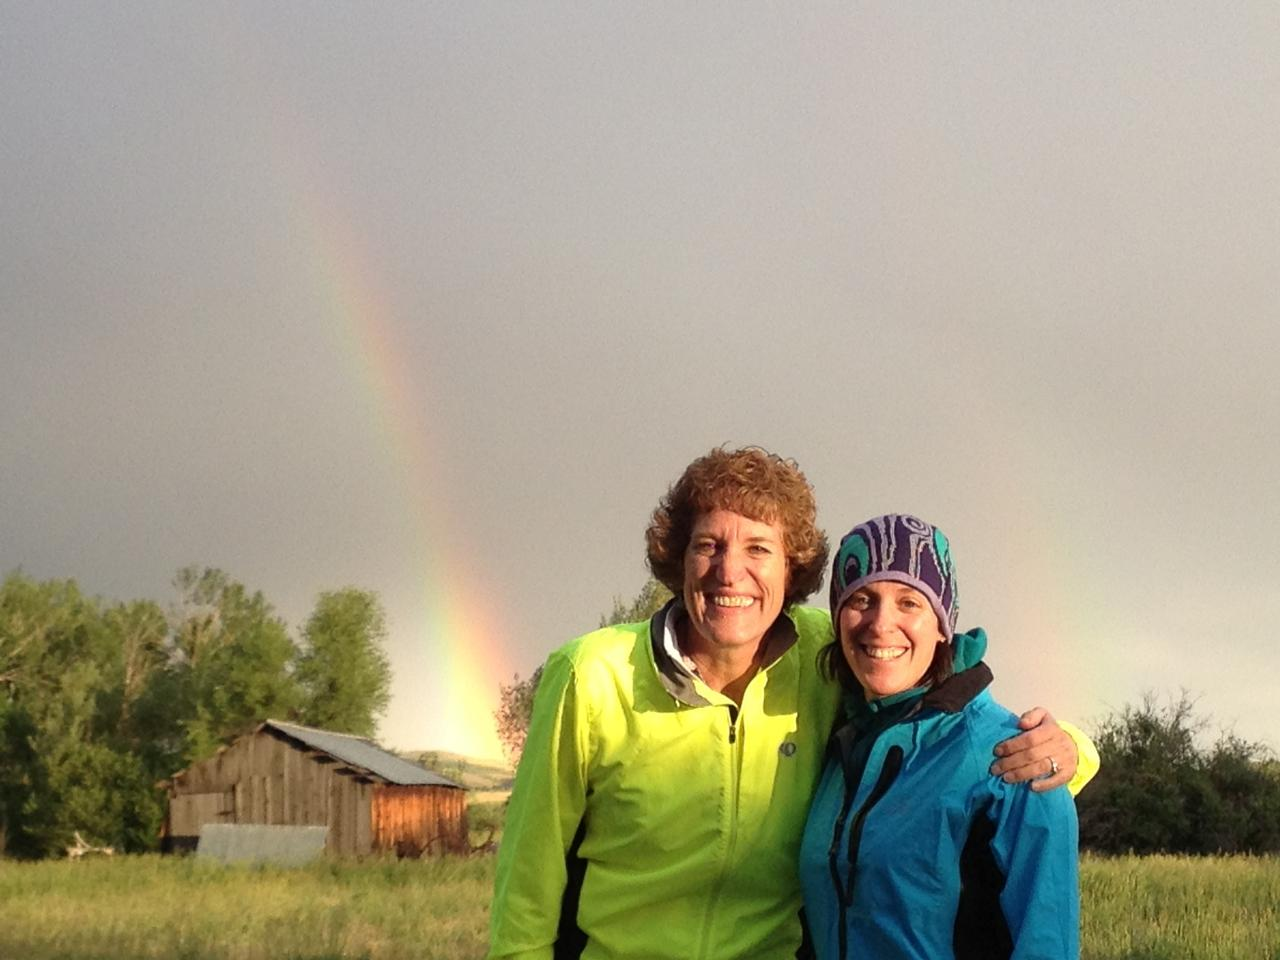 Rhonda, a colleague and good friend meets me to ride for 2 days! First rain and a double rainbow!